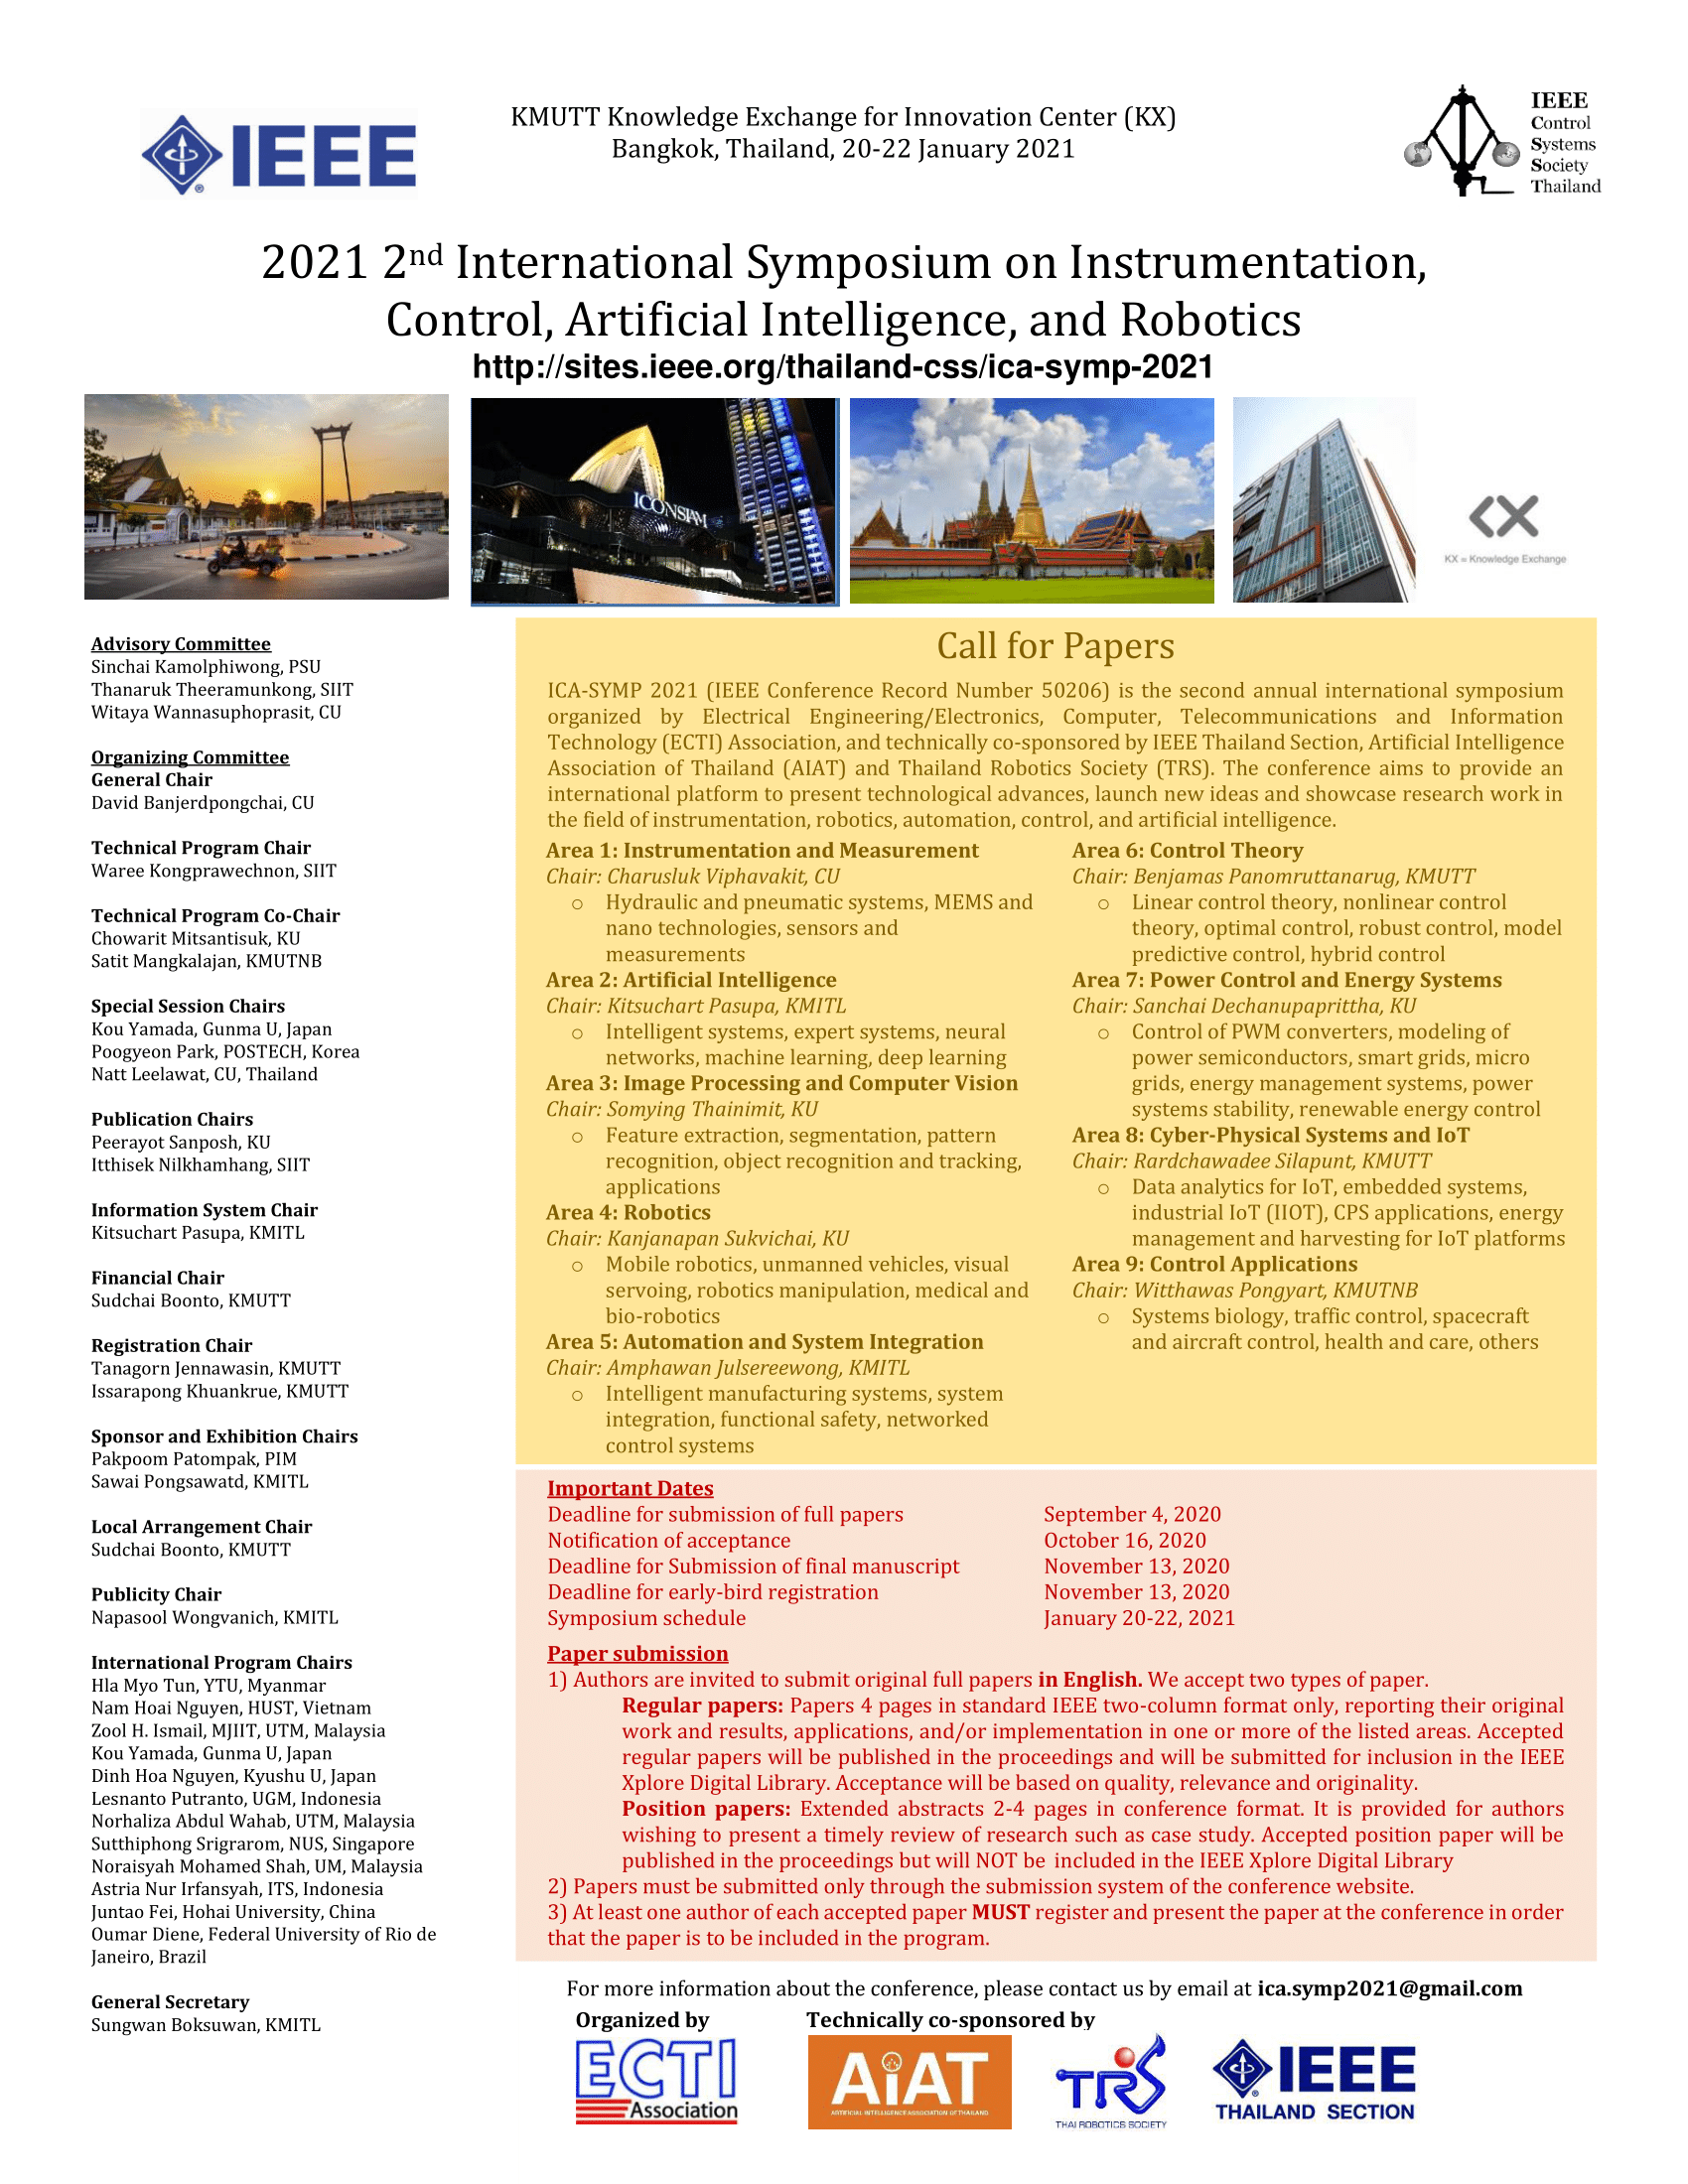 The 2021 2nd International Symposium on Instrumentation, Control, Artificial Intelligence, and Robotics (ICA-SYMP 2021)